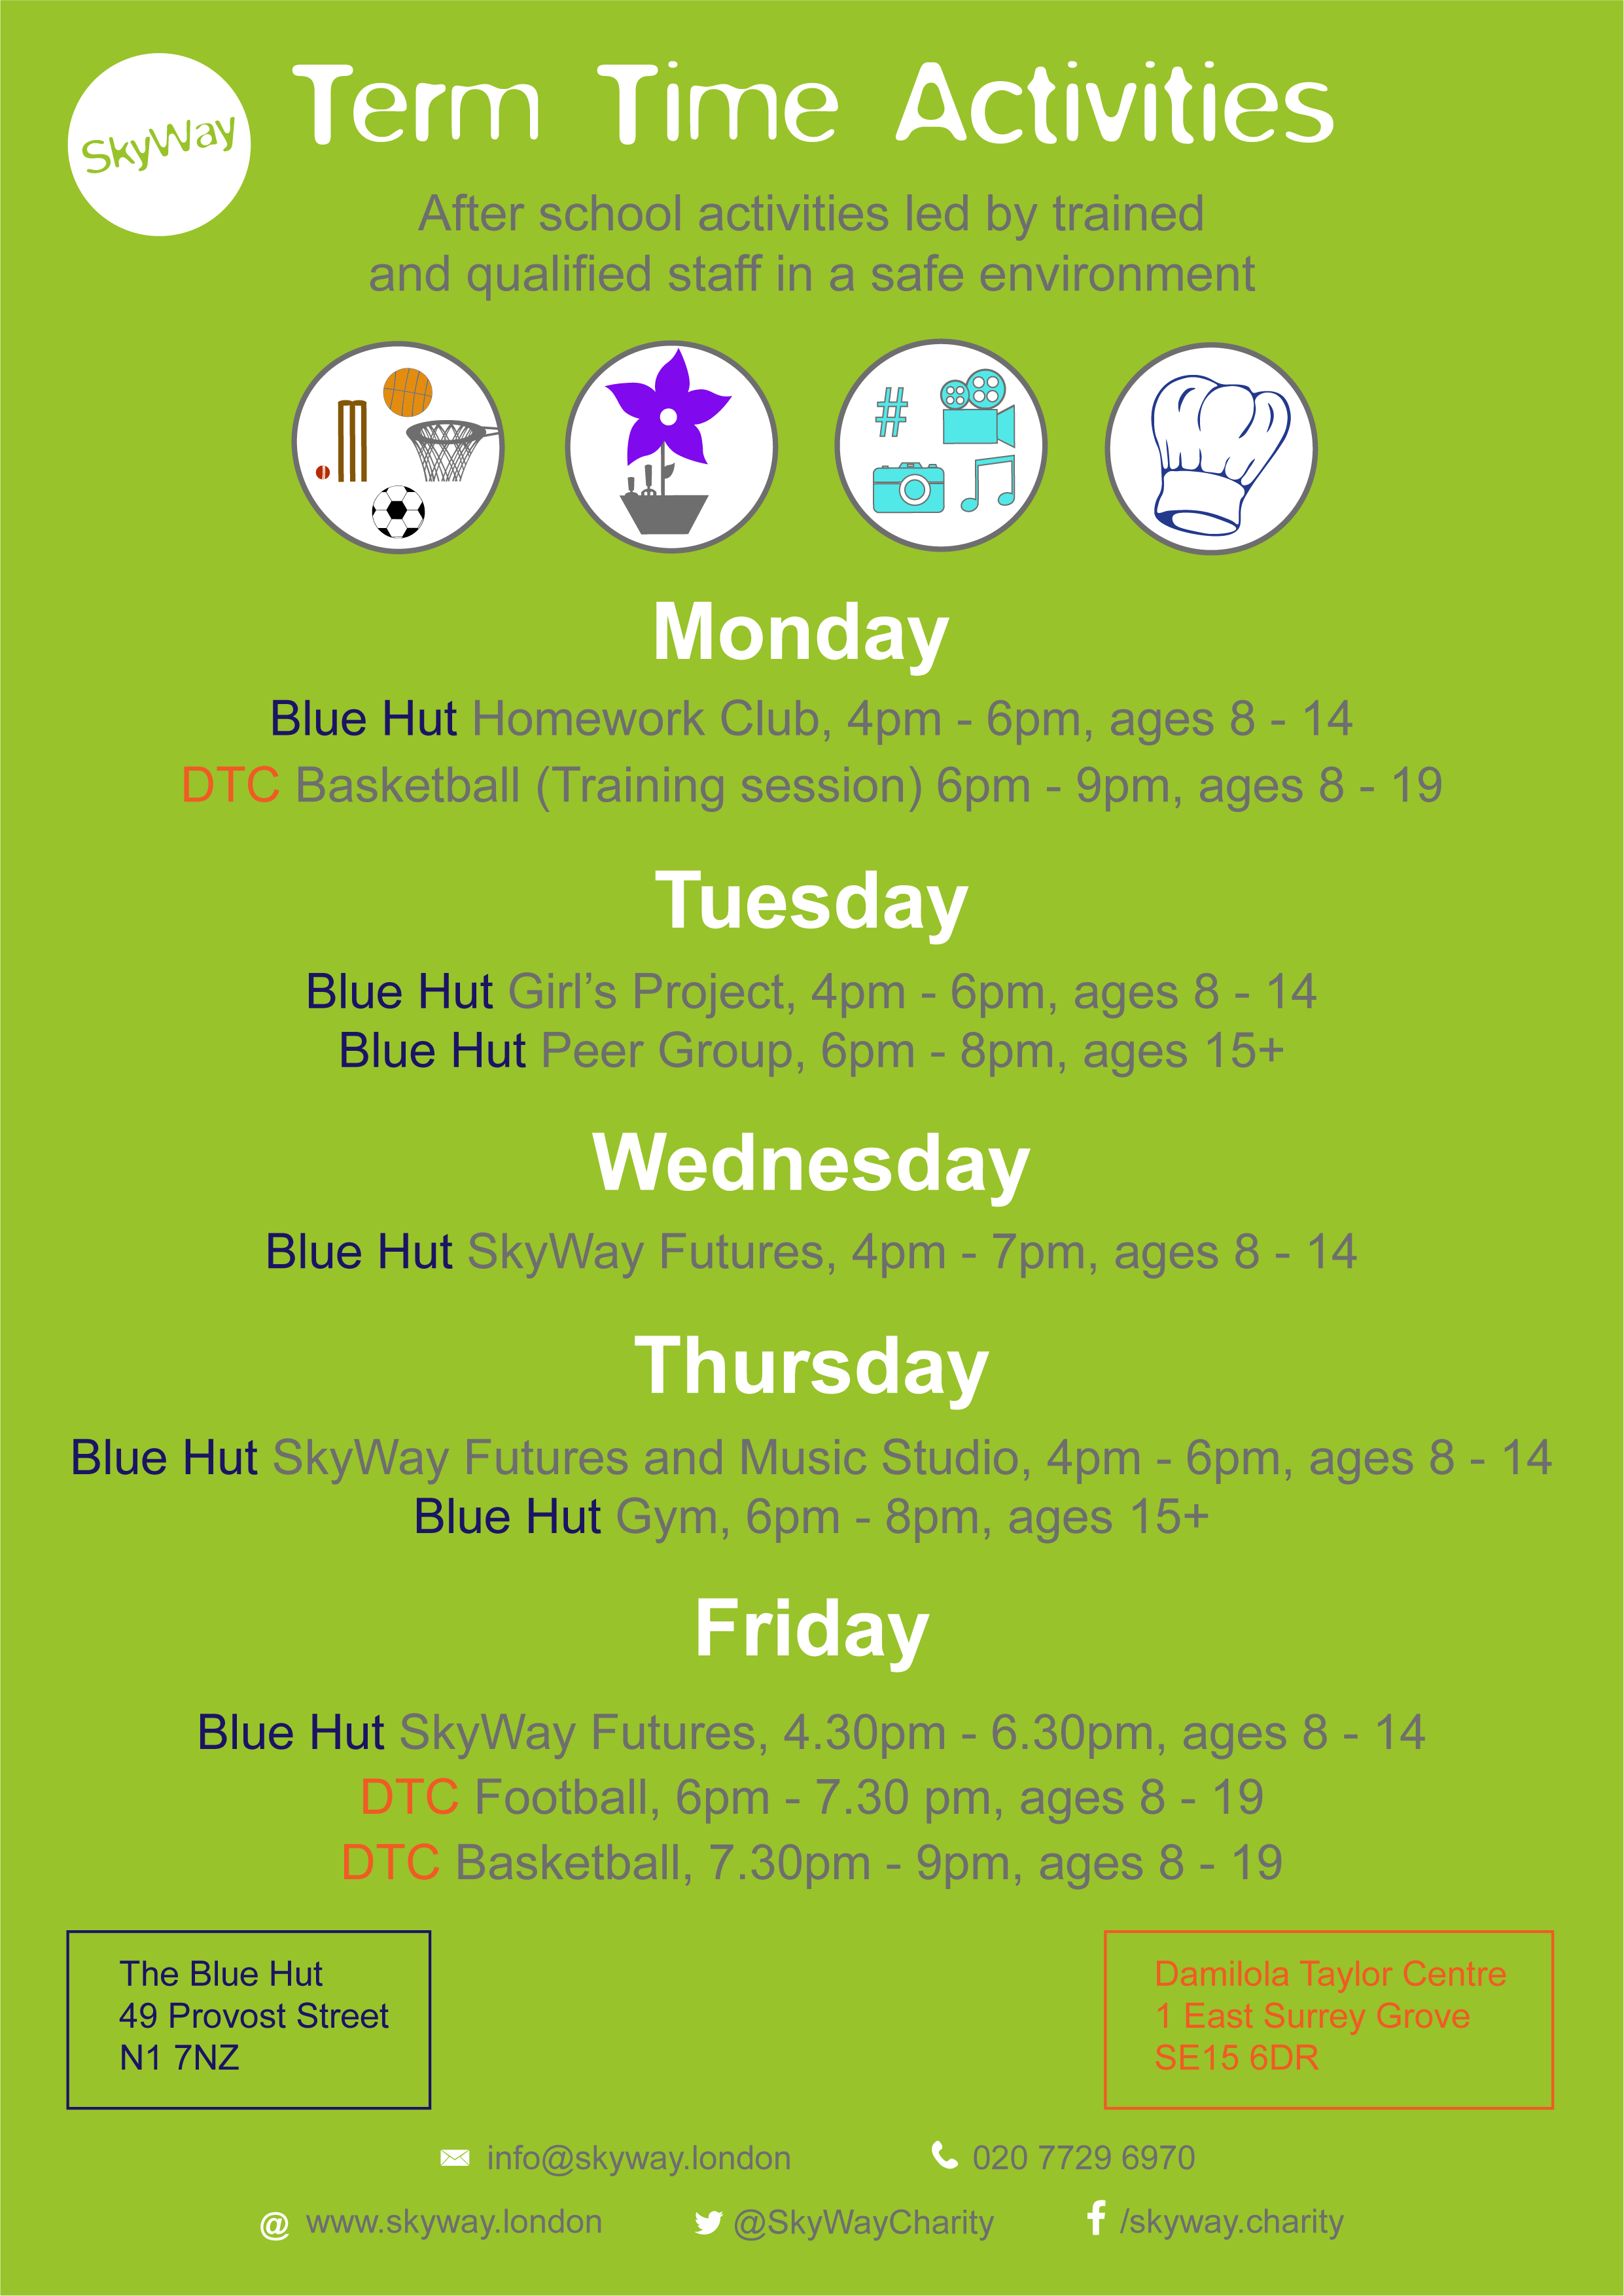 Term Time Activities (March 2018)